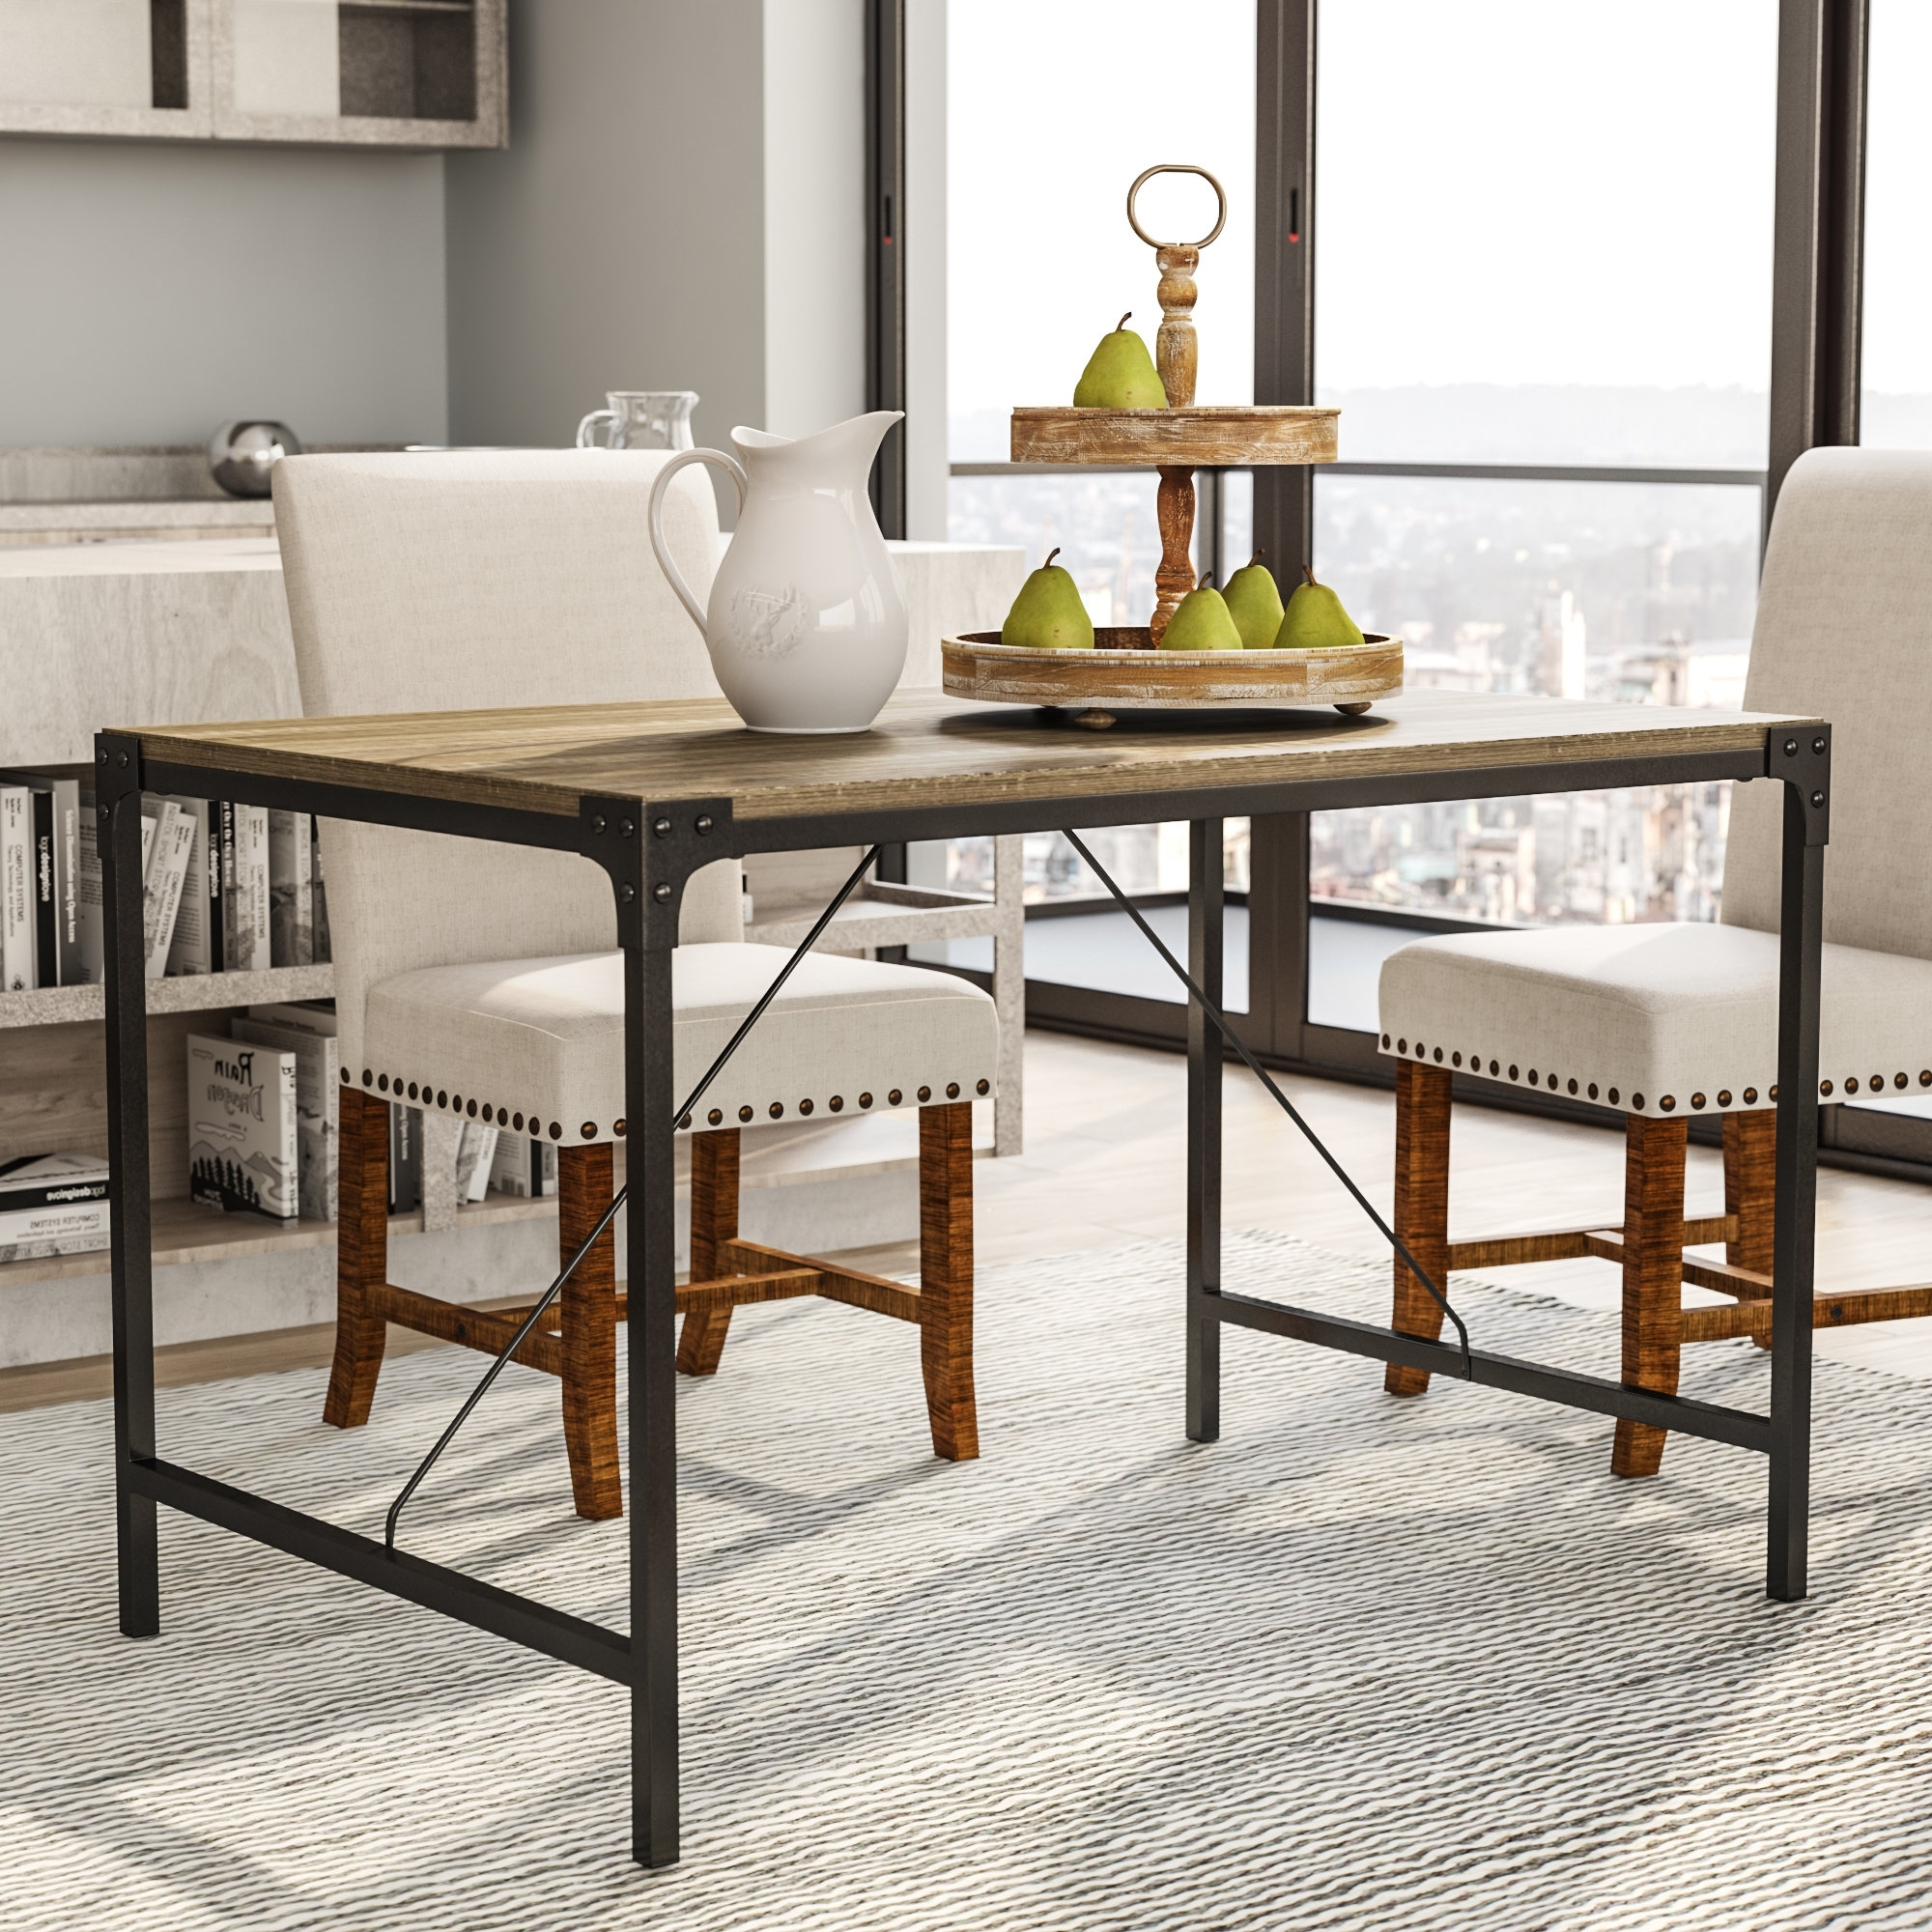 Most Current Madeline Angle Iron And Wood Dining Table Within Wood Dining Tables (View 22 of 25)